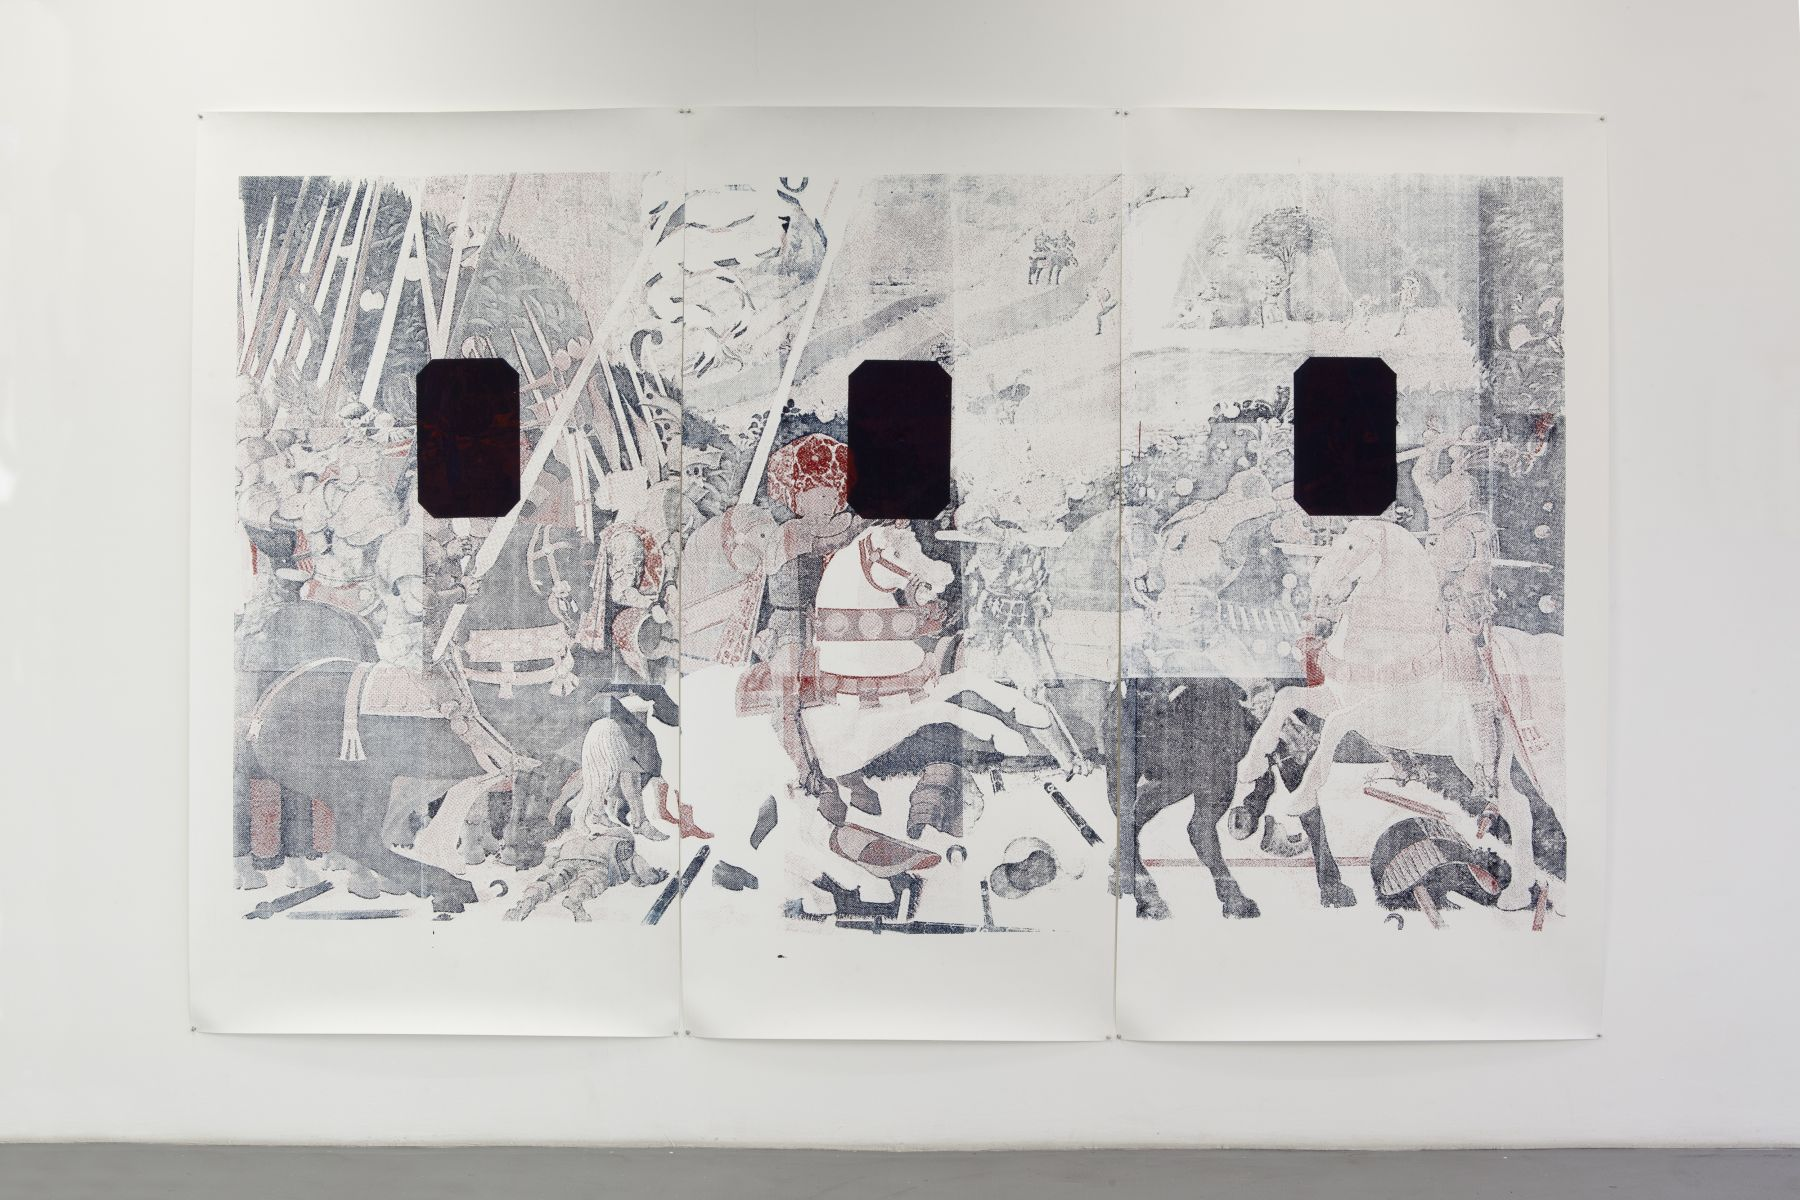 Lucy Skaer: Blanks and Ballast– installation view 4